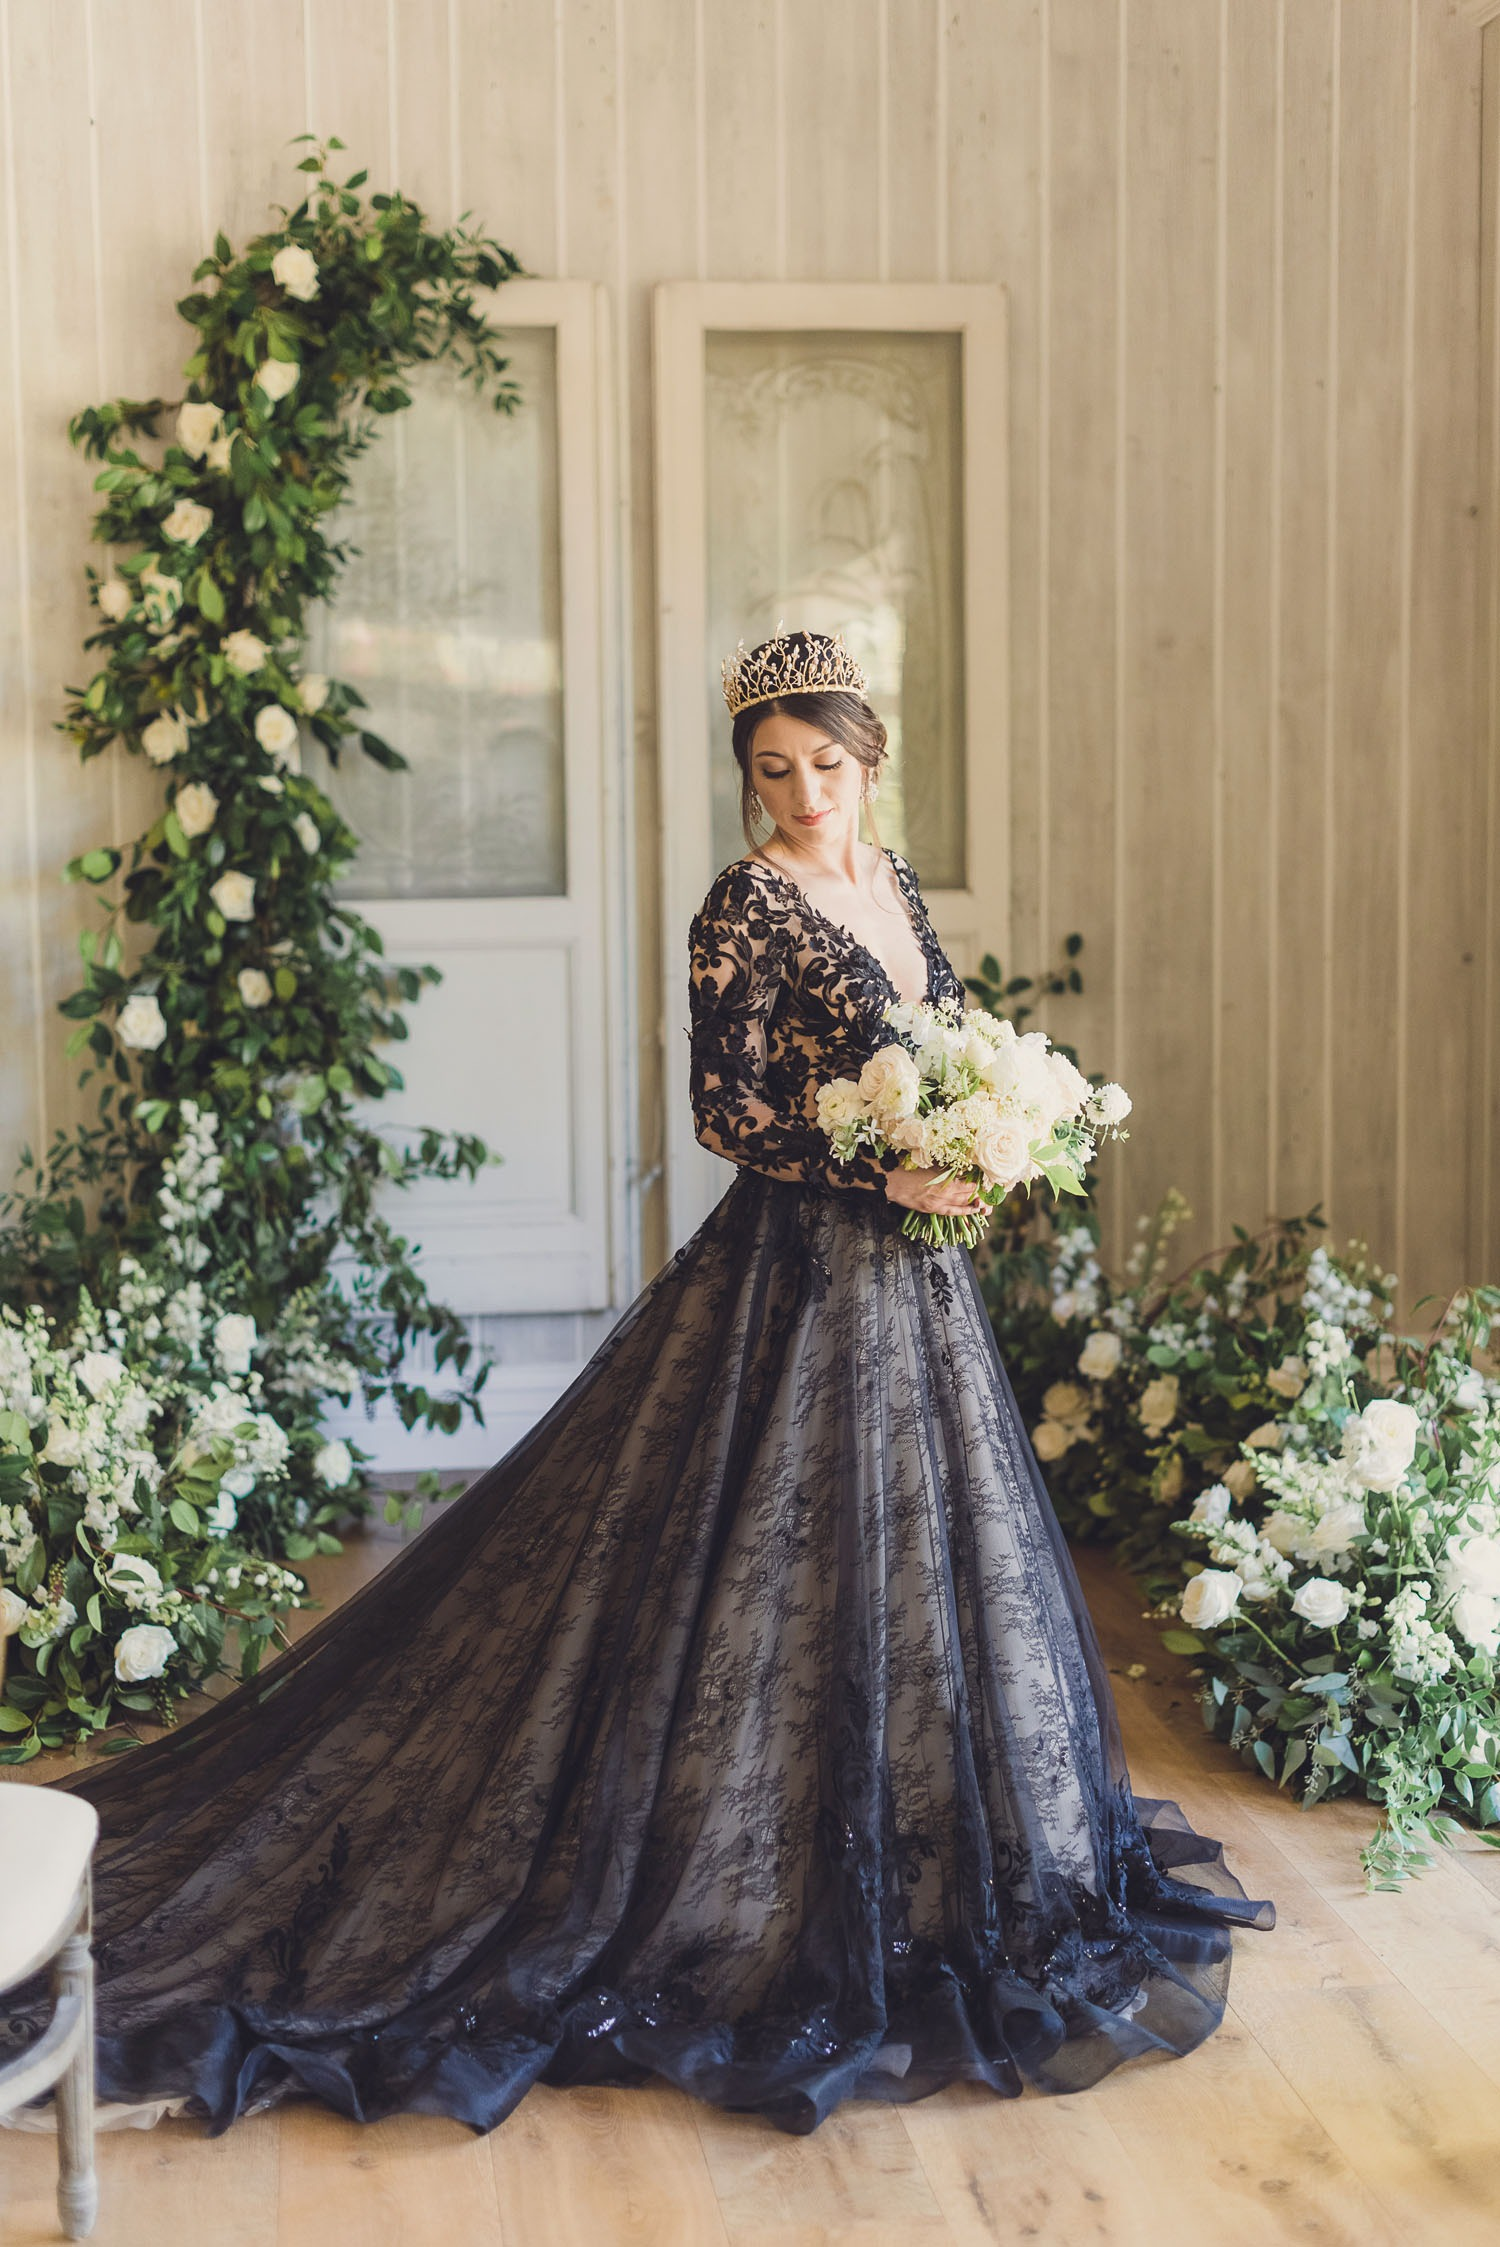 ballgown style black long sleeve wedding dress with lace bodice and train